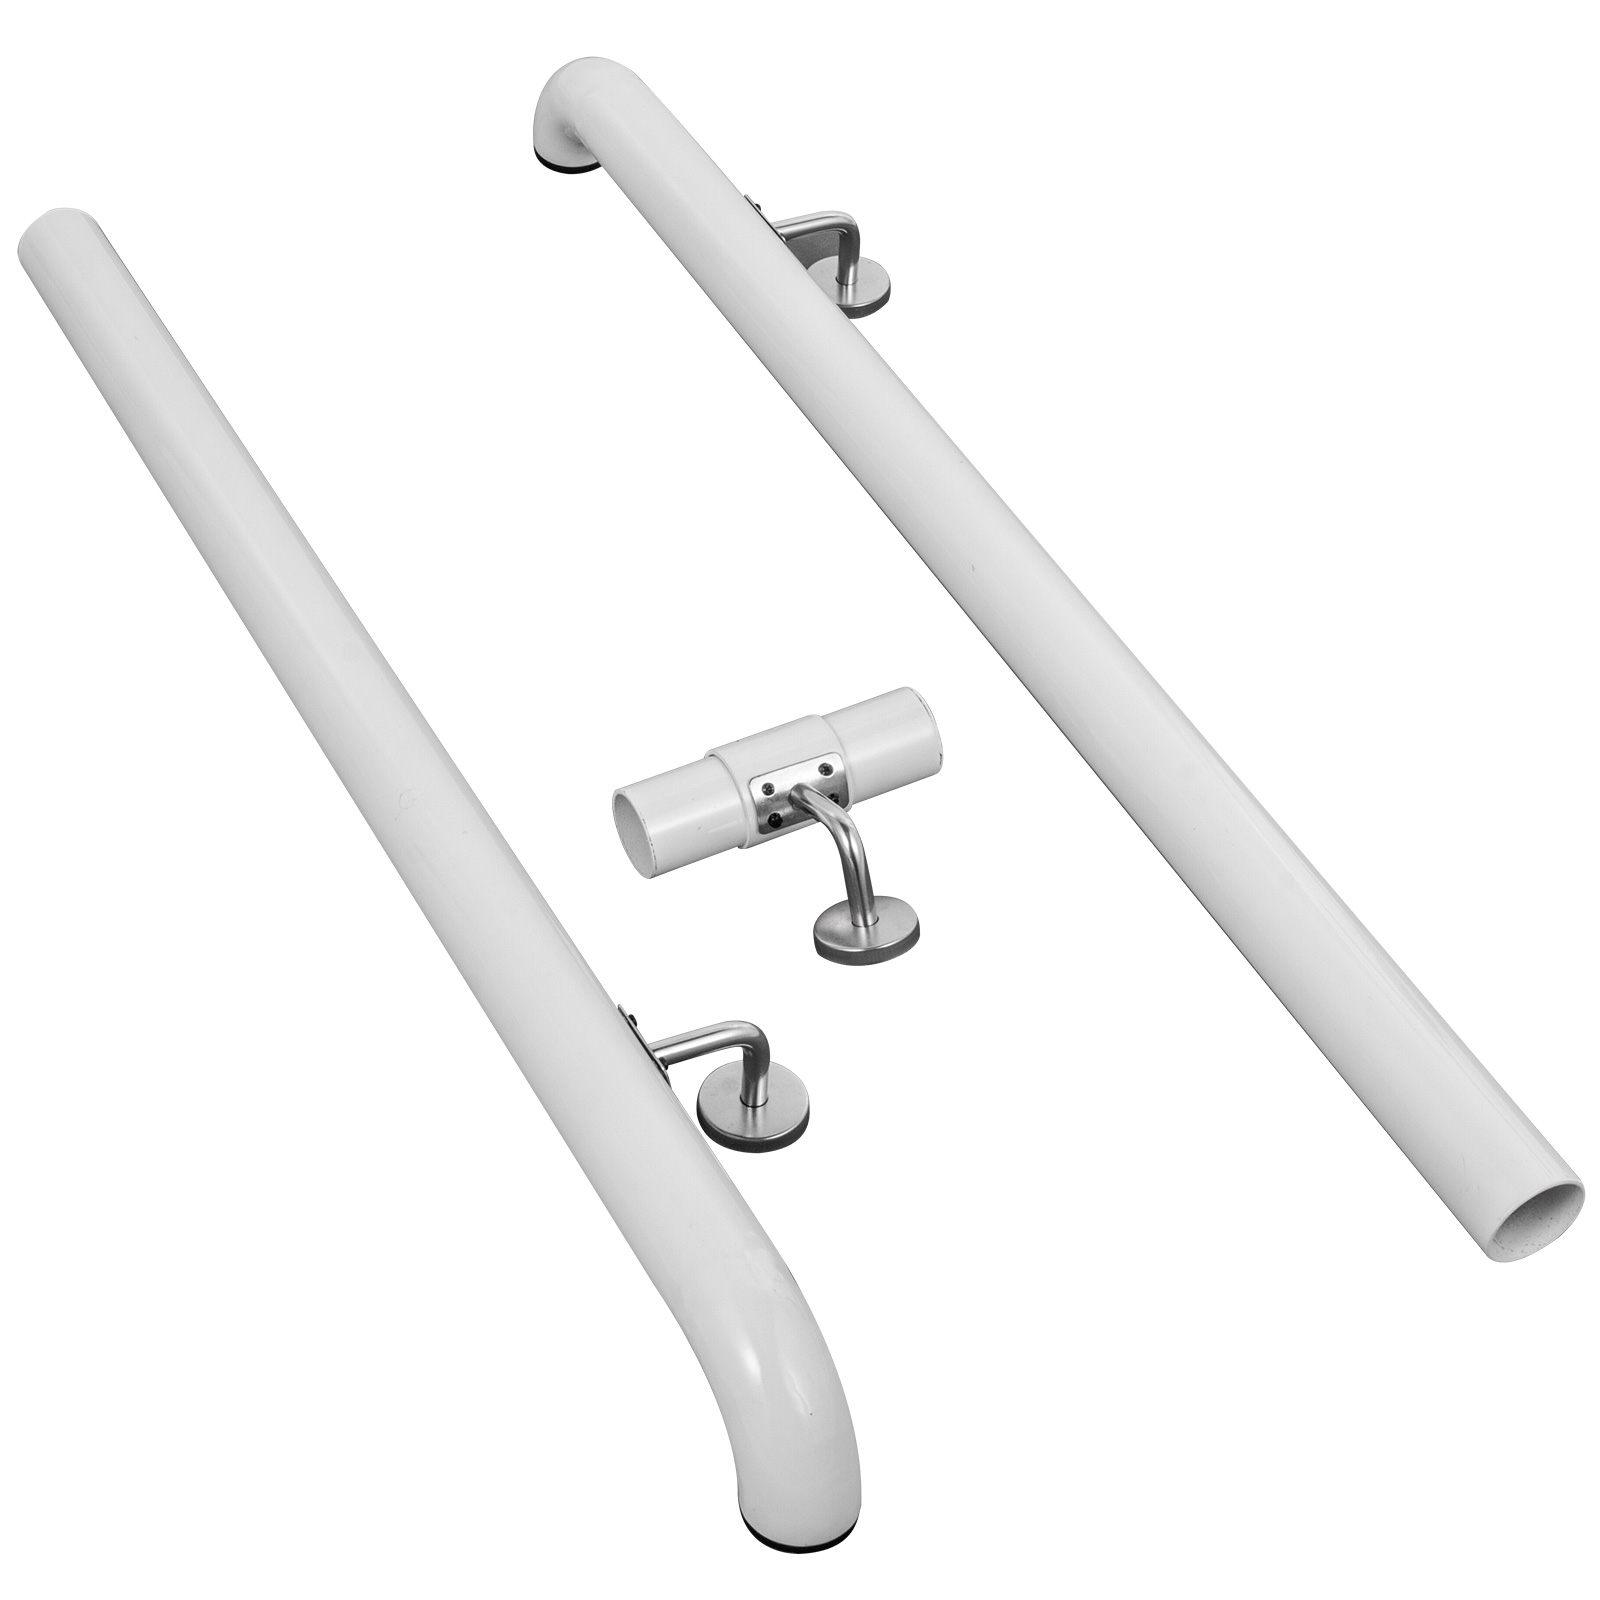 Stair-Handrail-Stair-Rail-Aluminum-Indoor-Handrail-for-Stairs-3-16-039-White-200lbs thumbnail 72